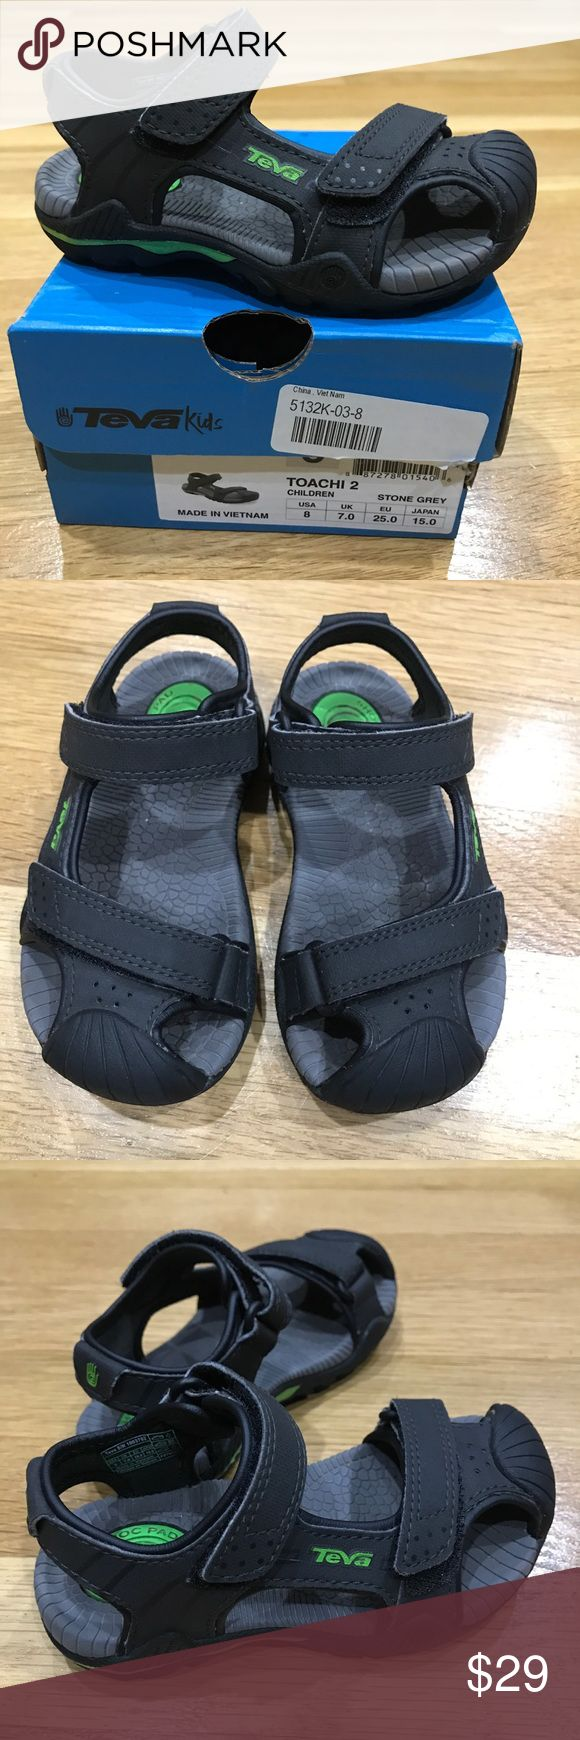 TEVA Toachi 2 Black/Grey Sandal w/ Green accents These were worn a total of two times before my son hit a growth spurt. Aside from some dirt in the soles, these are like new. Black and Grey Sandal with Green accents in toddler size 8.   Comes from a clean, smoke-free home Teva Shoes Sandals & Flip Flops